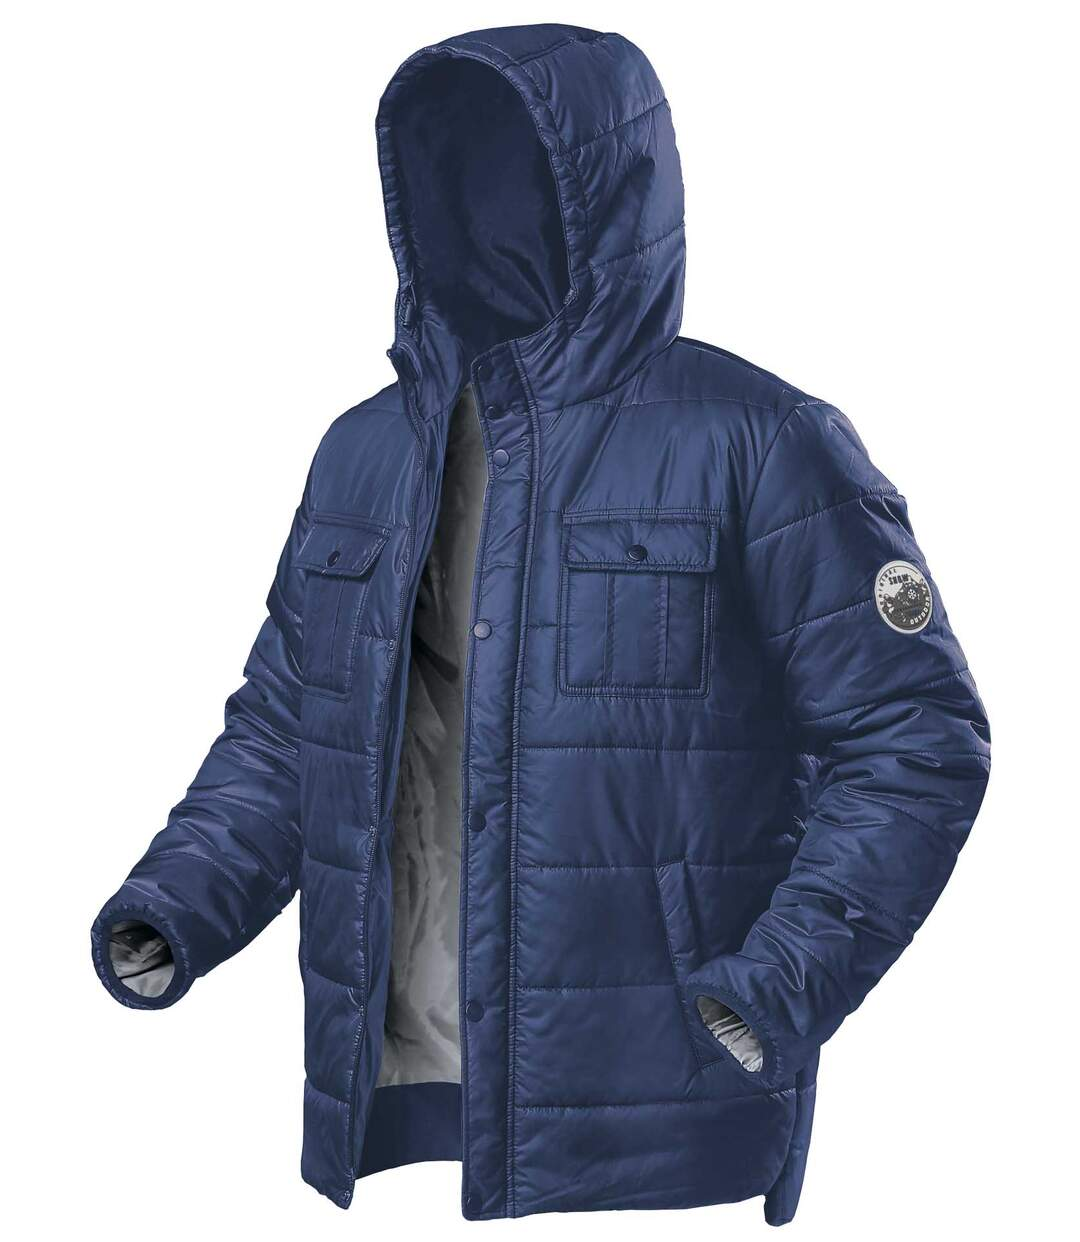 Doudoune Homme Bleue Authentic Outdoor